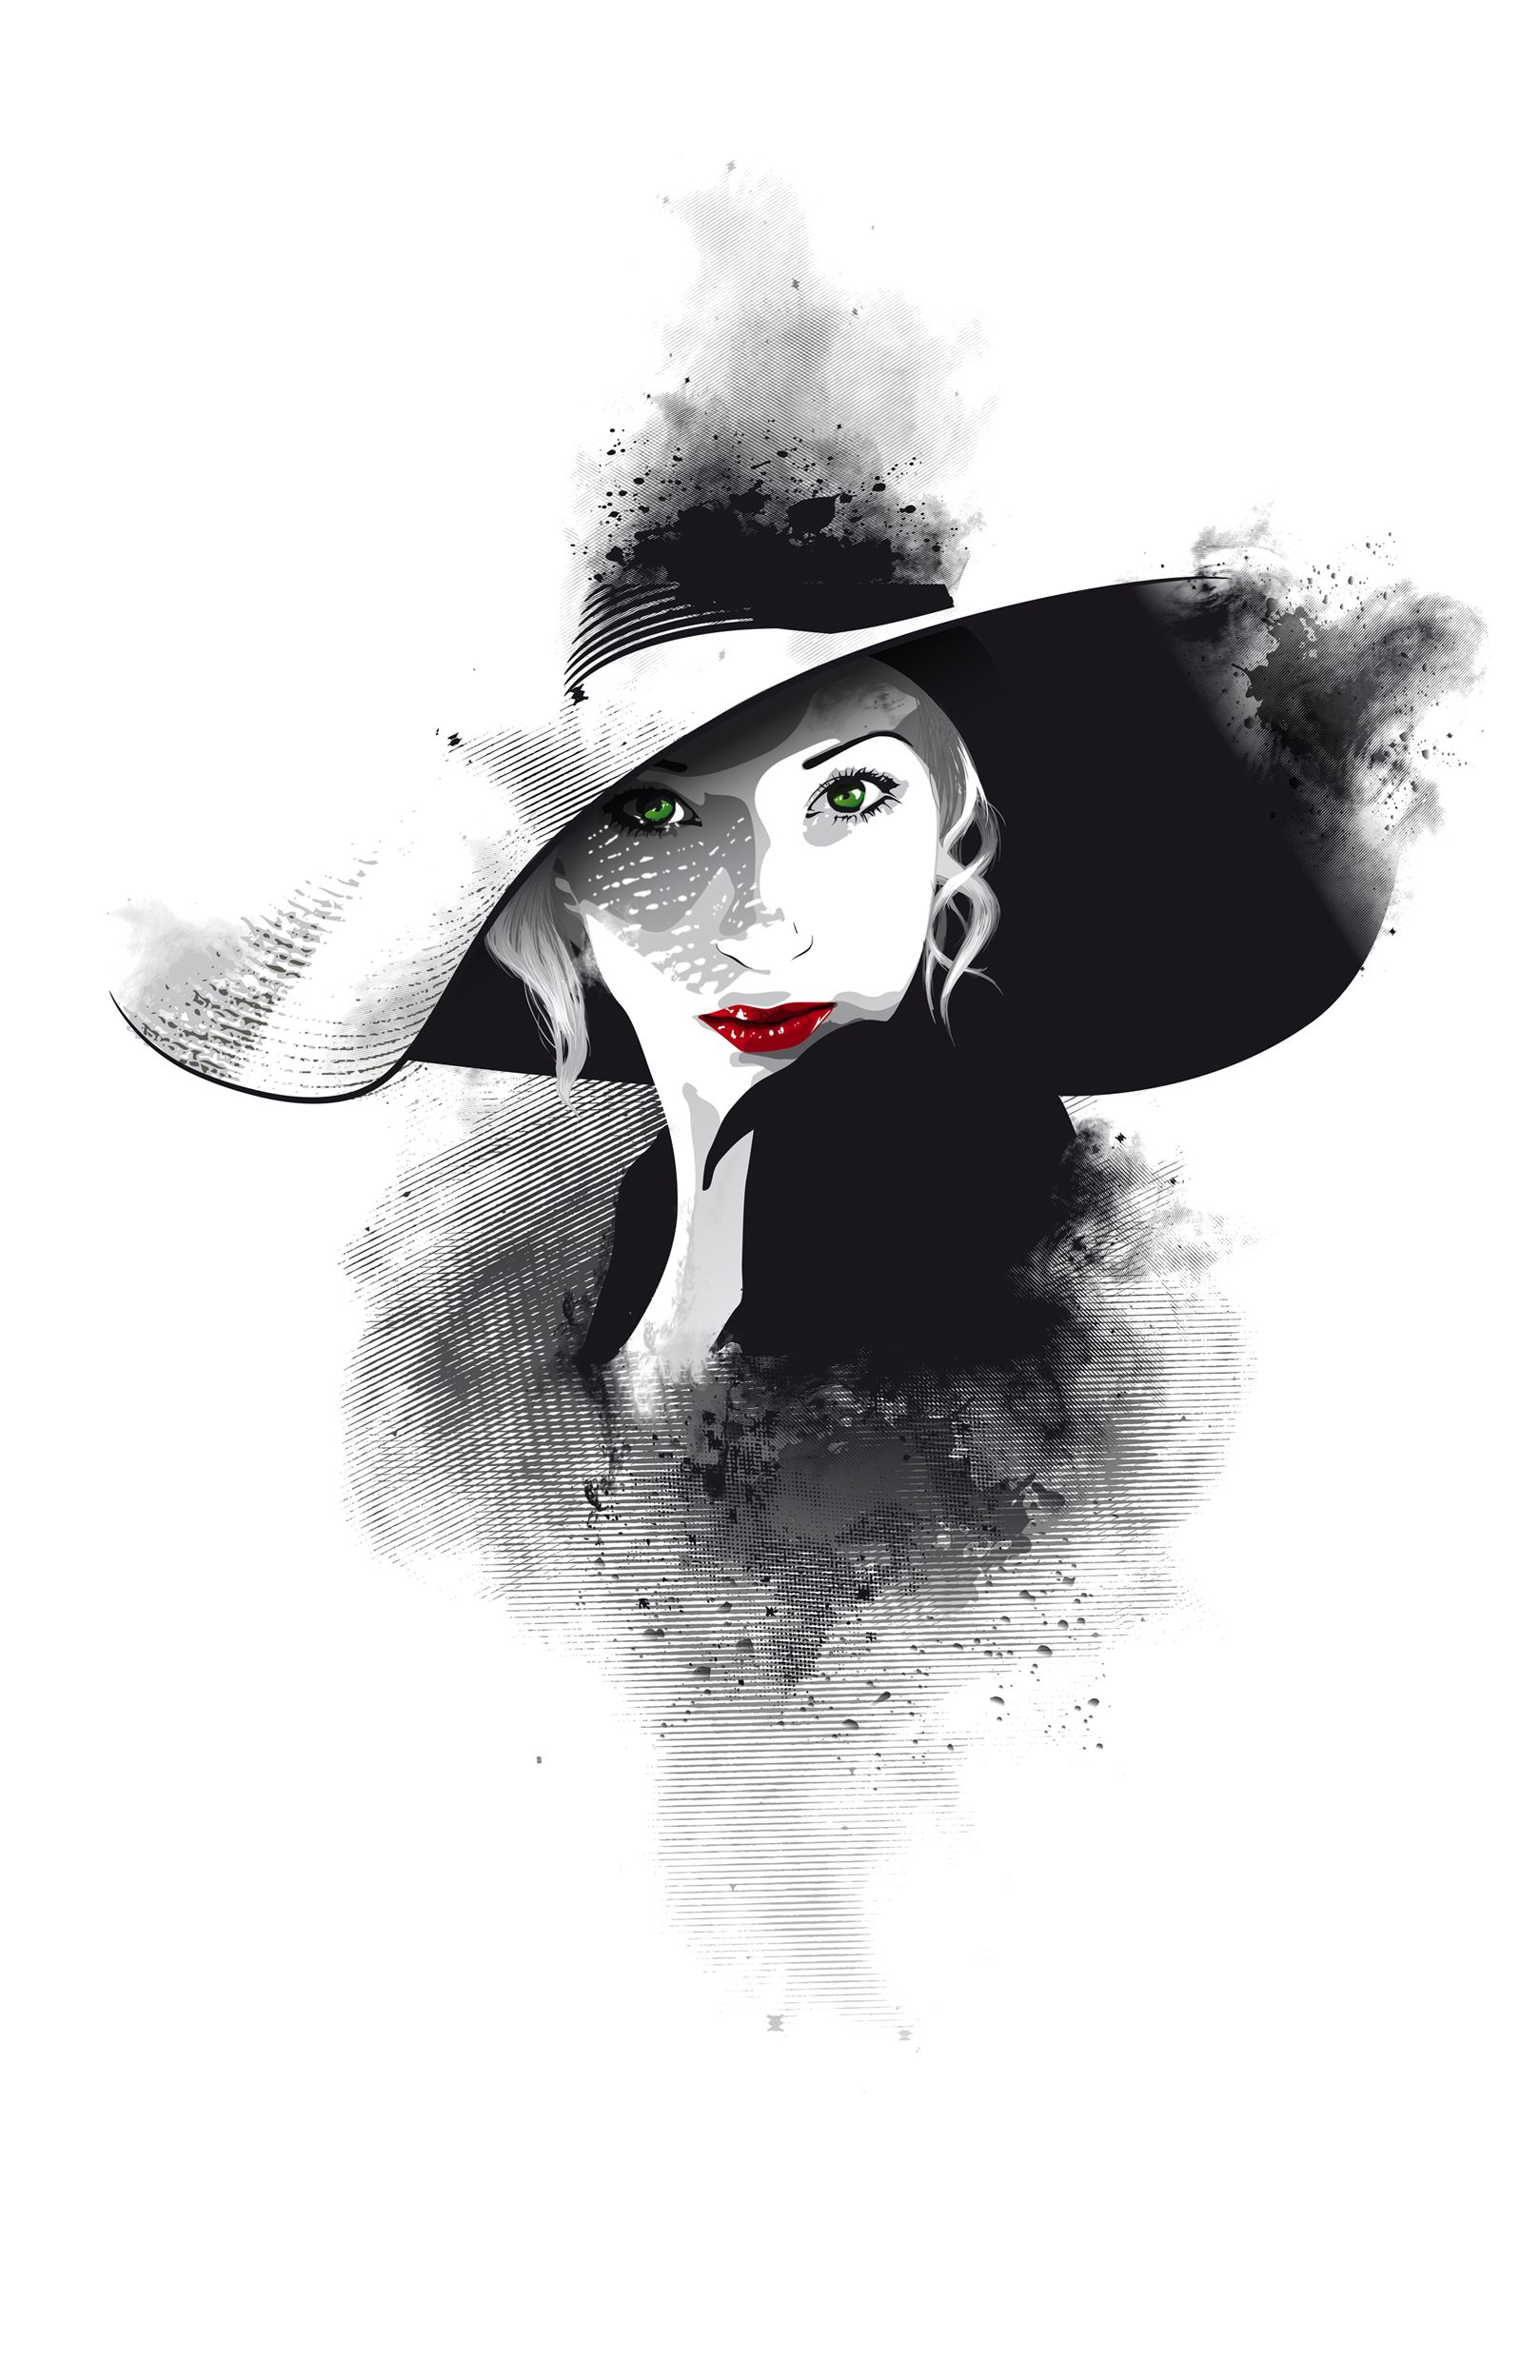 Hat by Lorenzo Impeato - Daily Inspiration